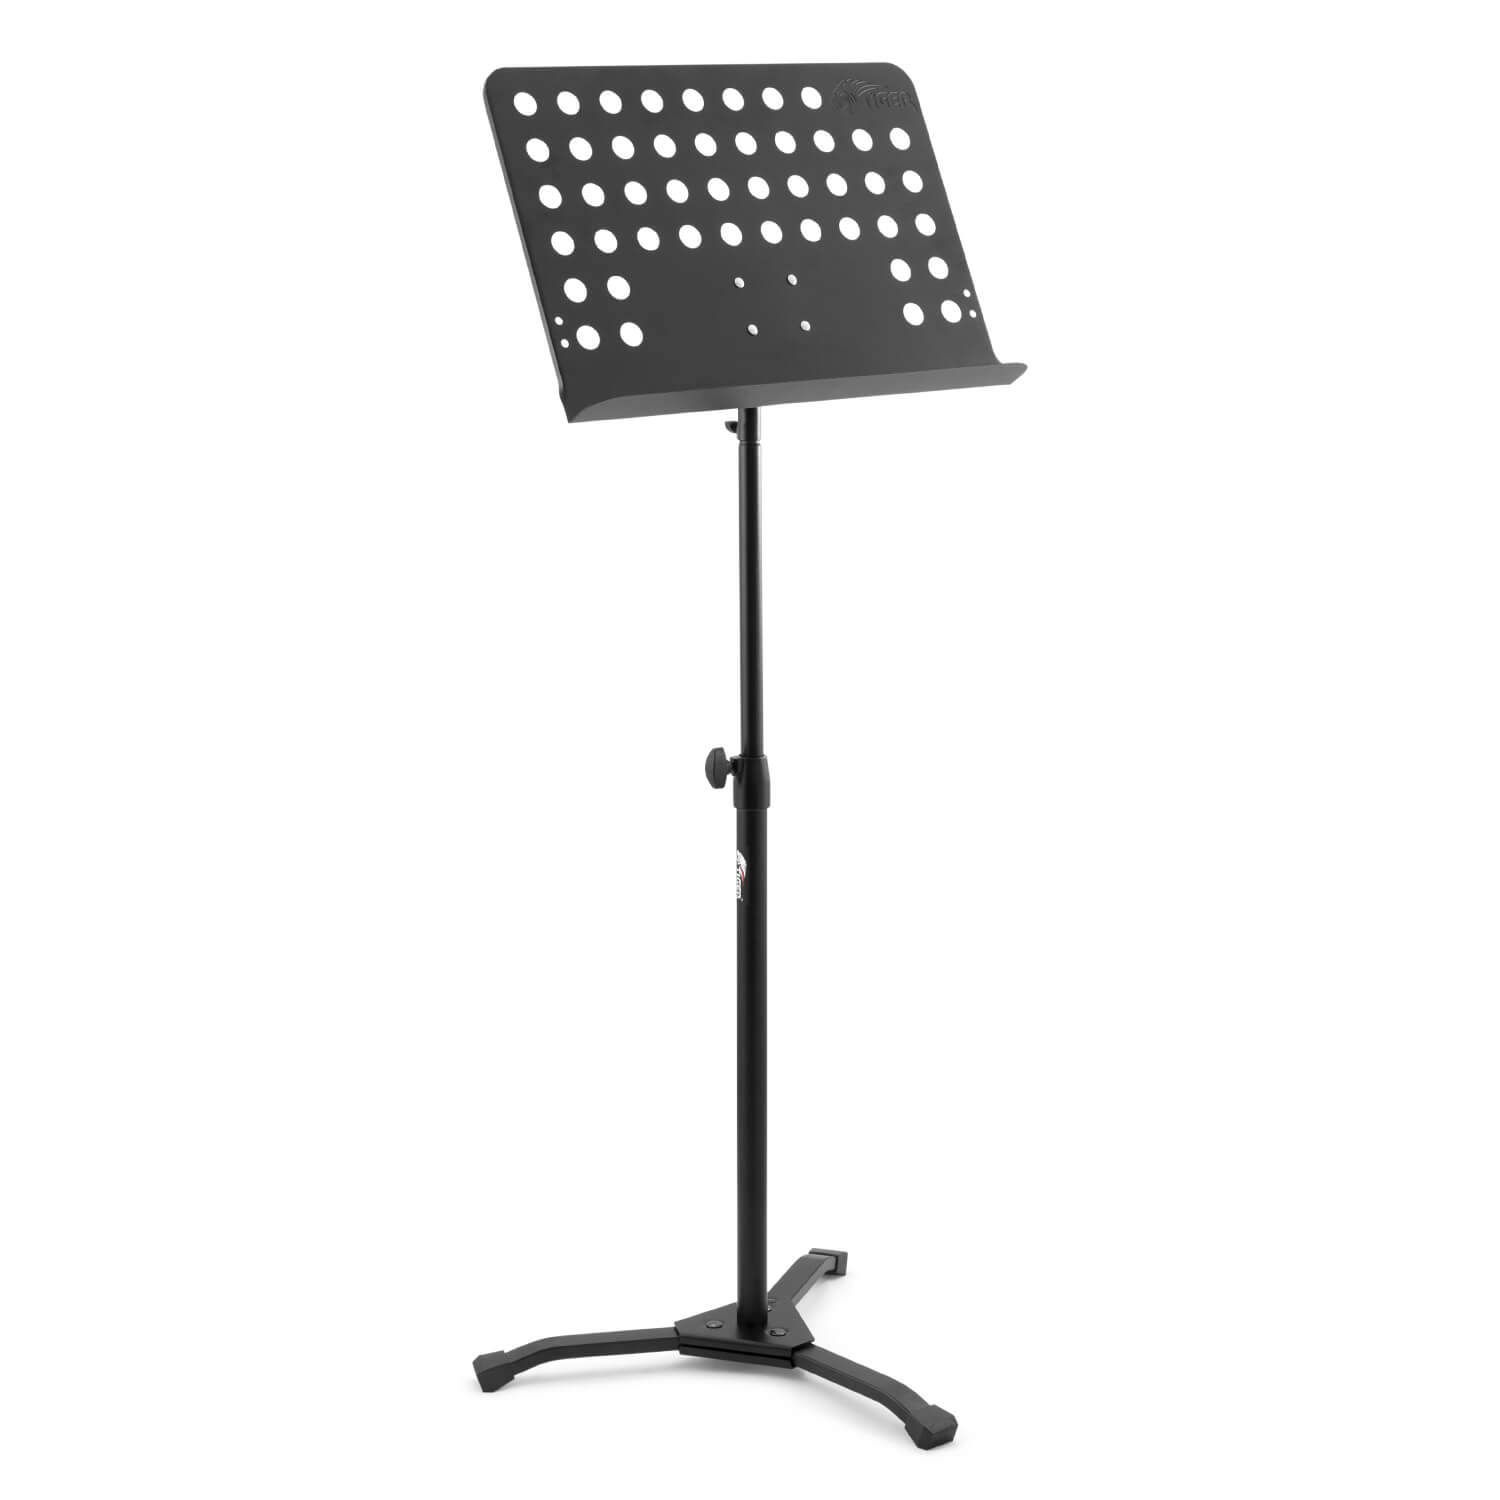 Musical Instruments & Gear Trustful Black Music Stand Clip On Orchestra 1 White Led Book Reading Light Lamp